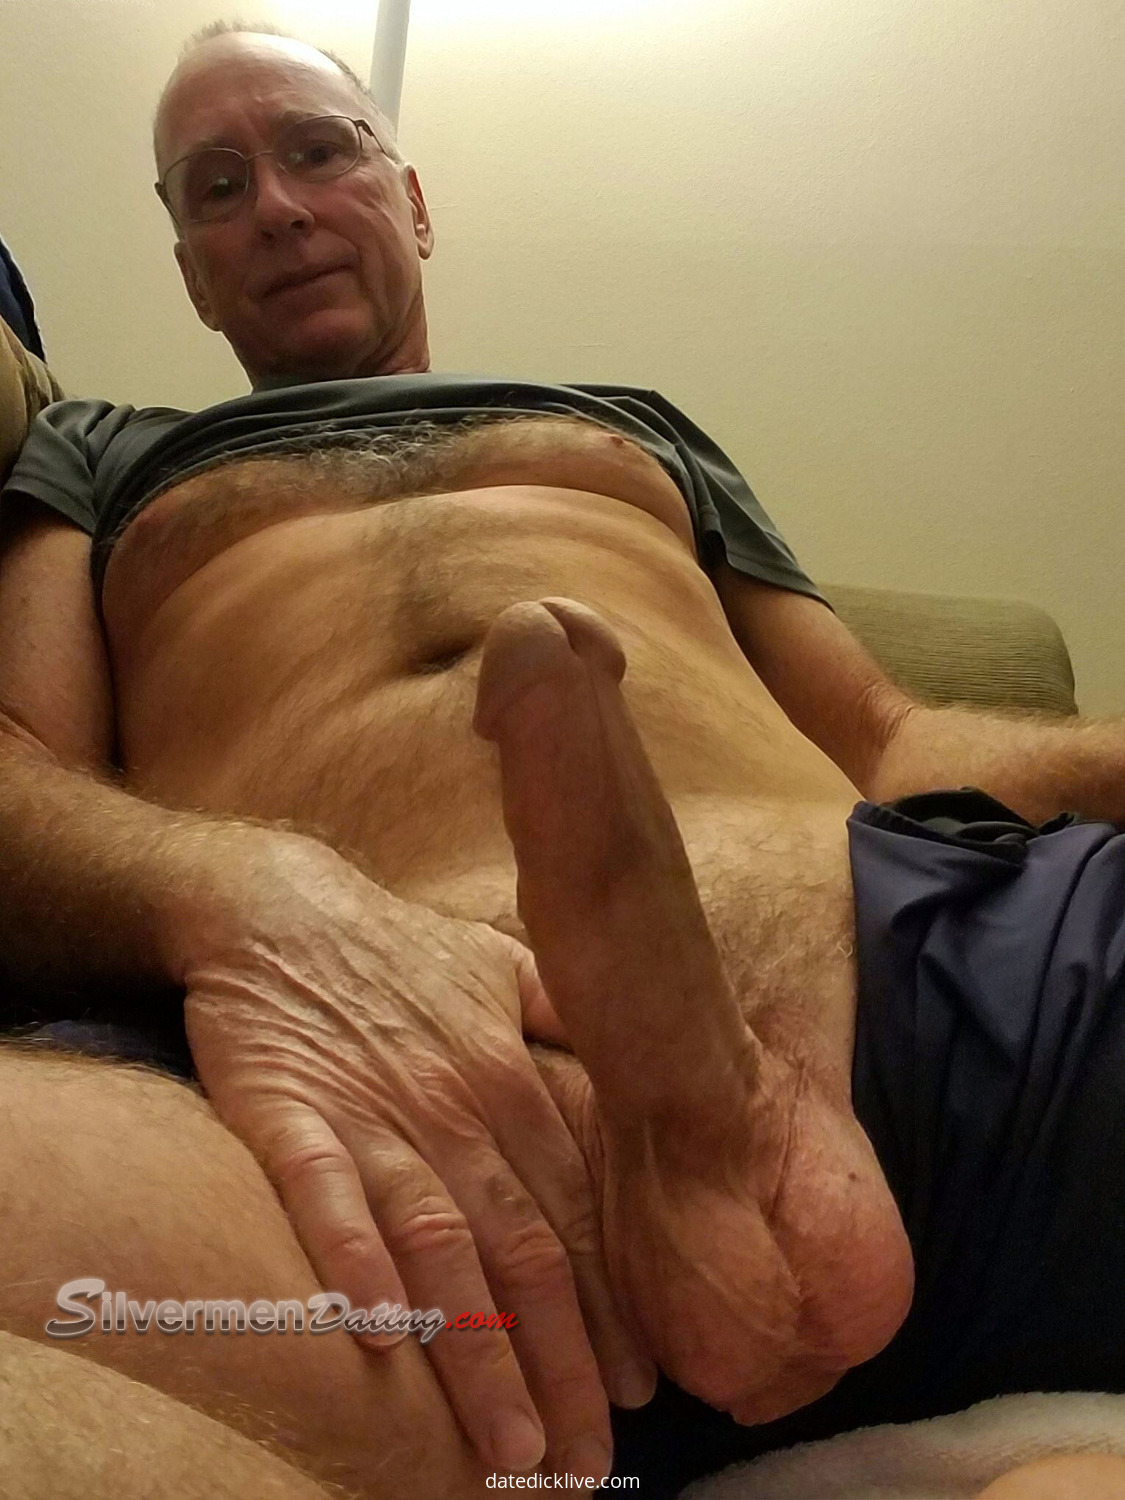 Big Dick Dads